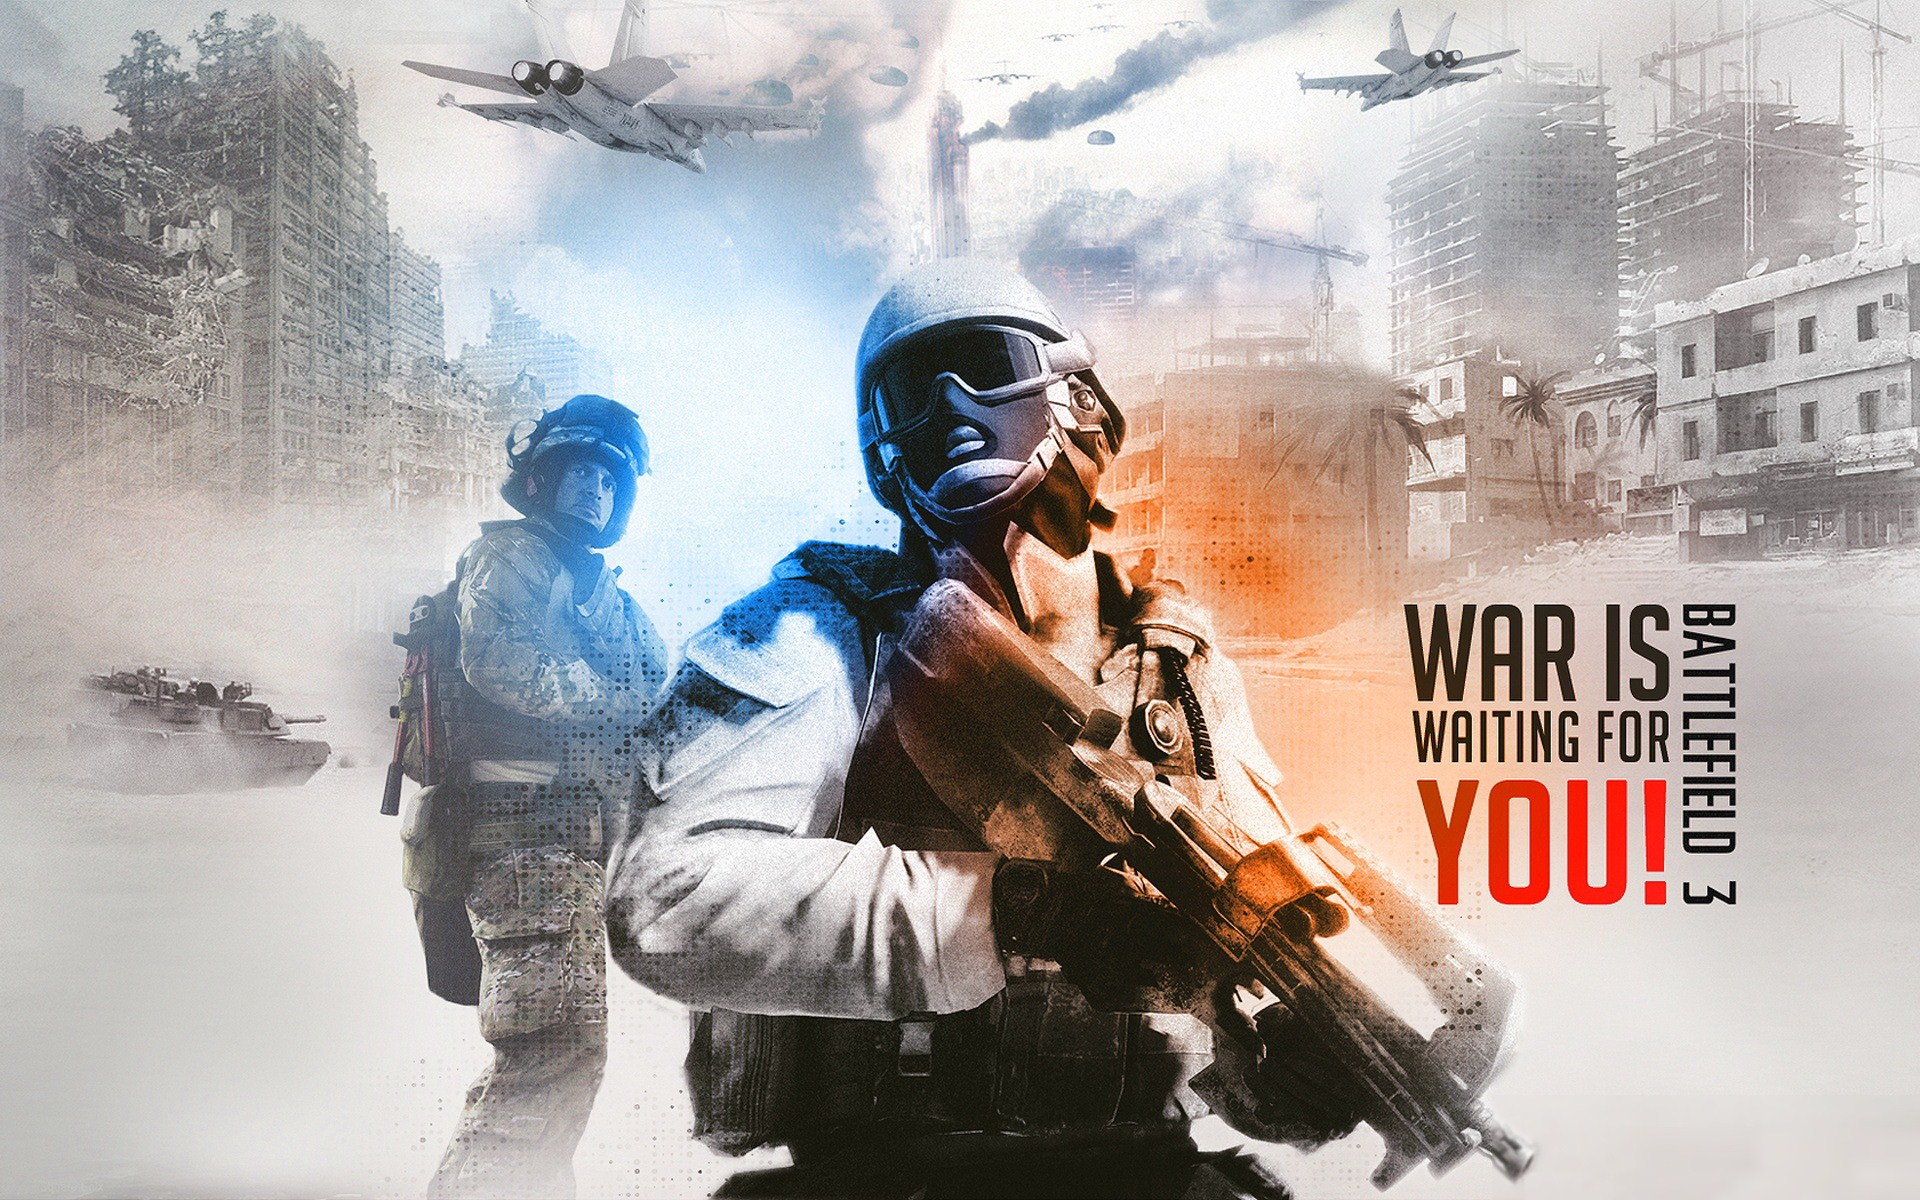 Games Wallpapers High Quality,latest Games Wallpapers,shooting - Battlefield 3 4 Wii U , HD Wallpaper & Backgrounds